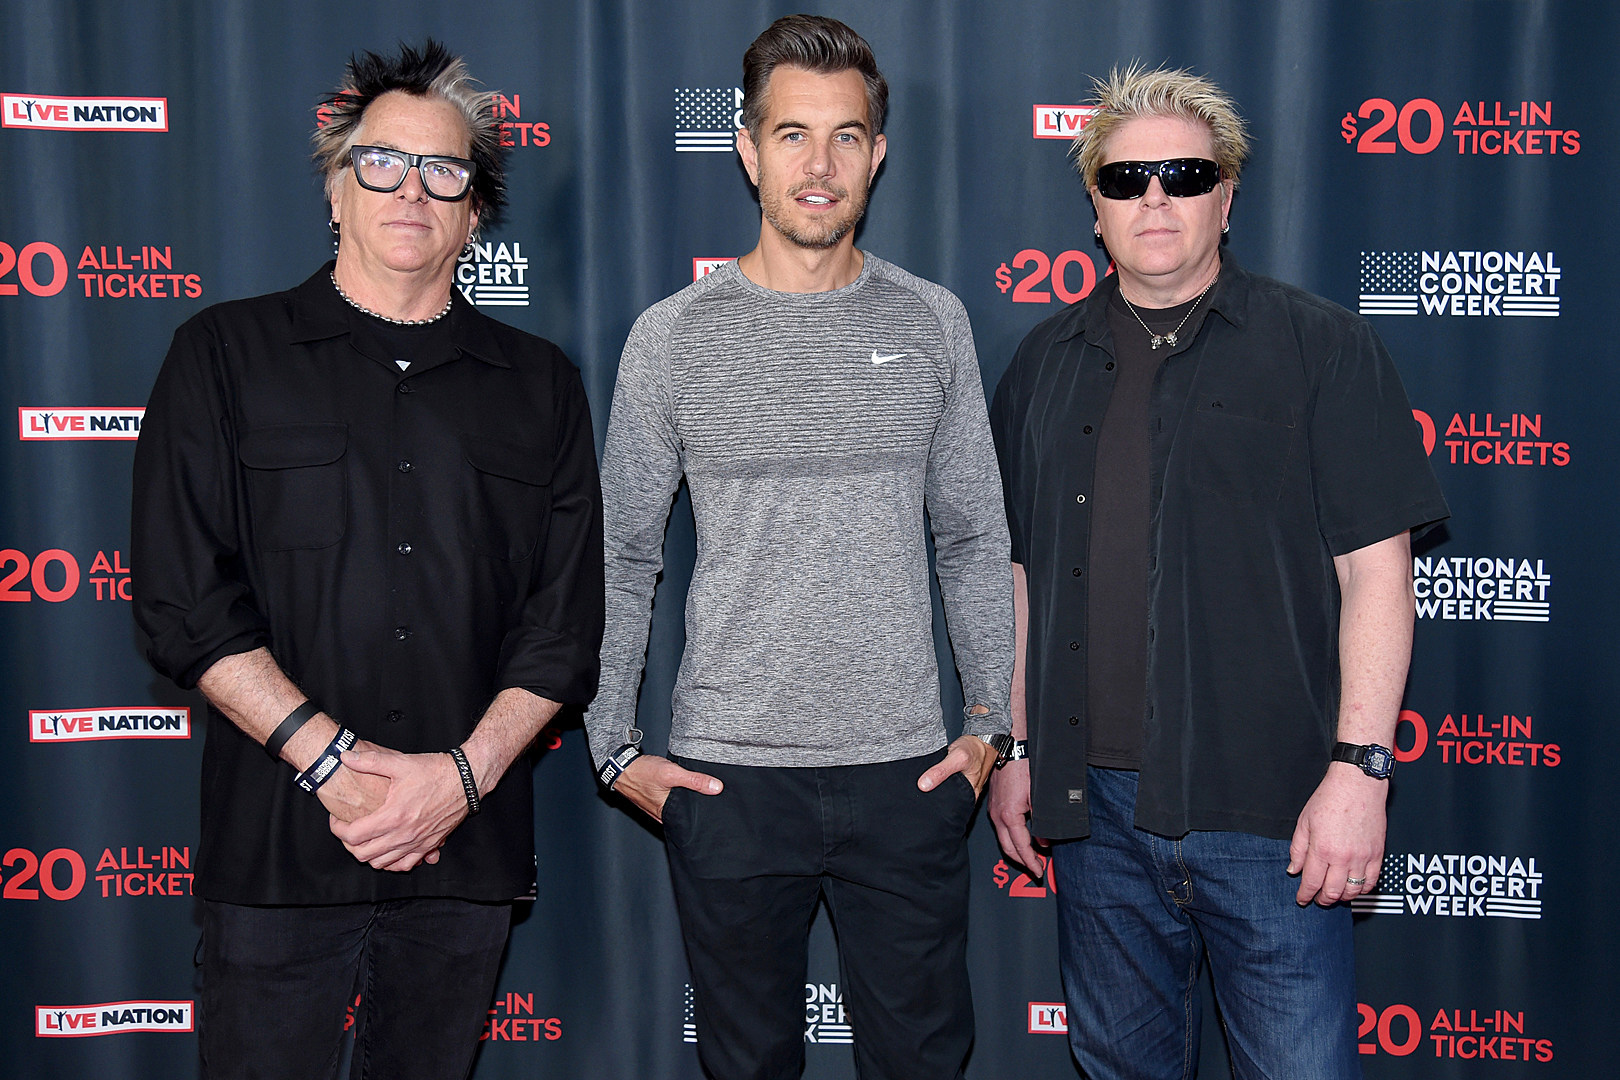 The Offspring + 311 Take on Each Other's Music With Covers of 'Down' + 'Self Esteem'